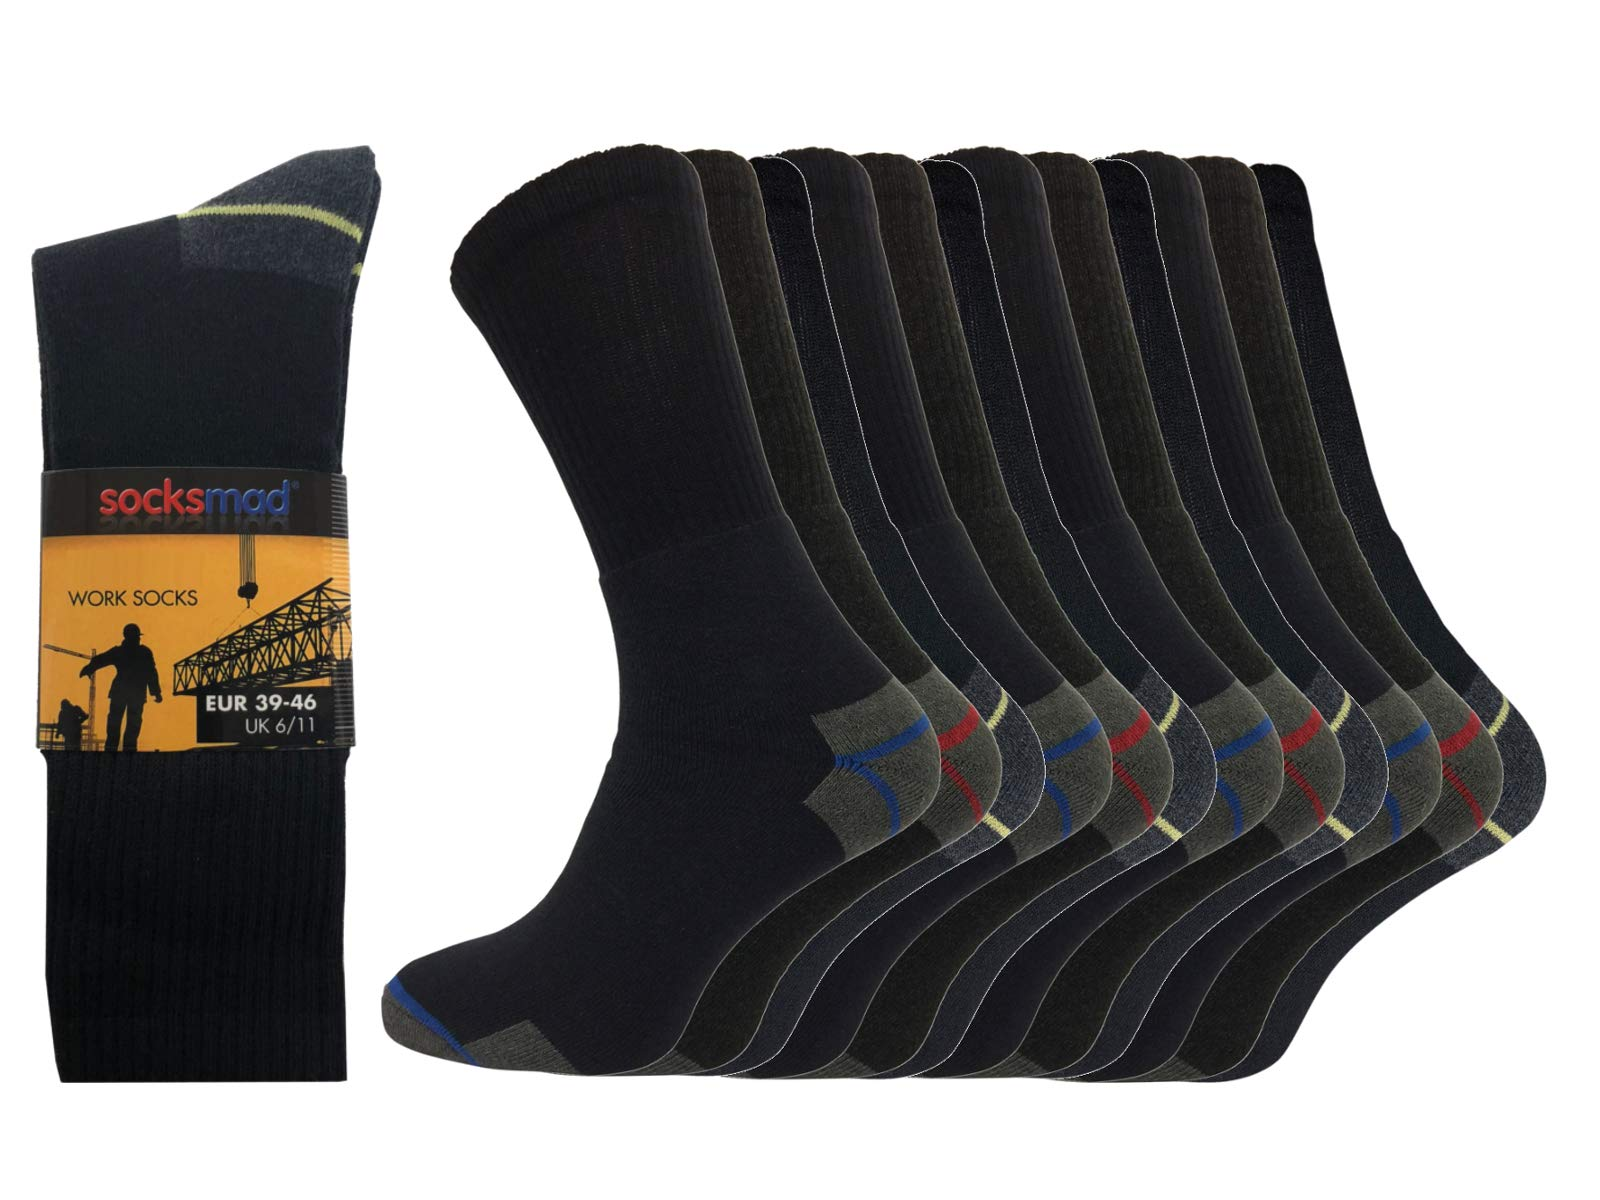 Socksmad Heavy Duty Work Socks - 12 Pairs Safety Boot Working Socks - Reinforced Heels and Toes - Cotton Rich Cushion Support for Extra Protection - Perfect for Builders, Mechanics or Guards 1